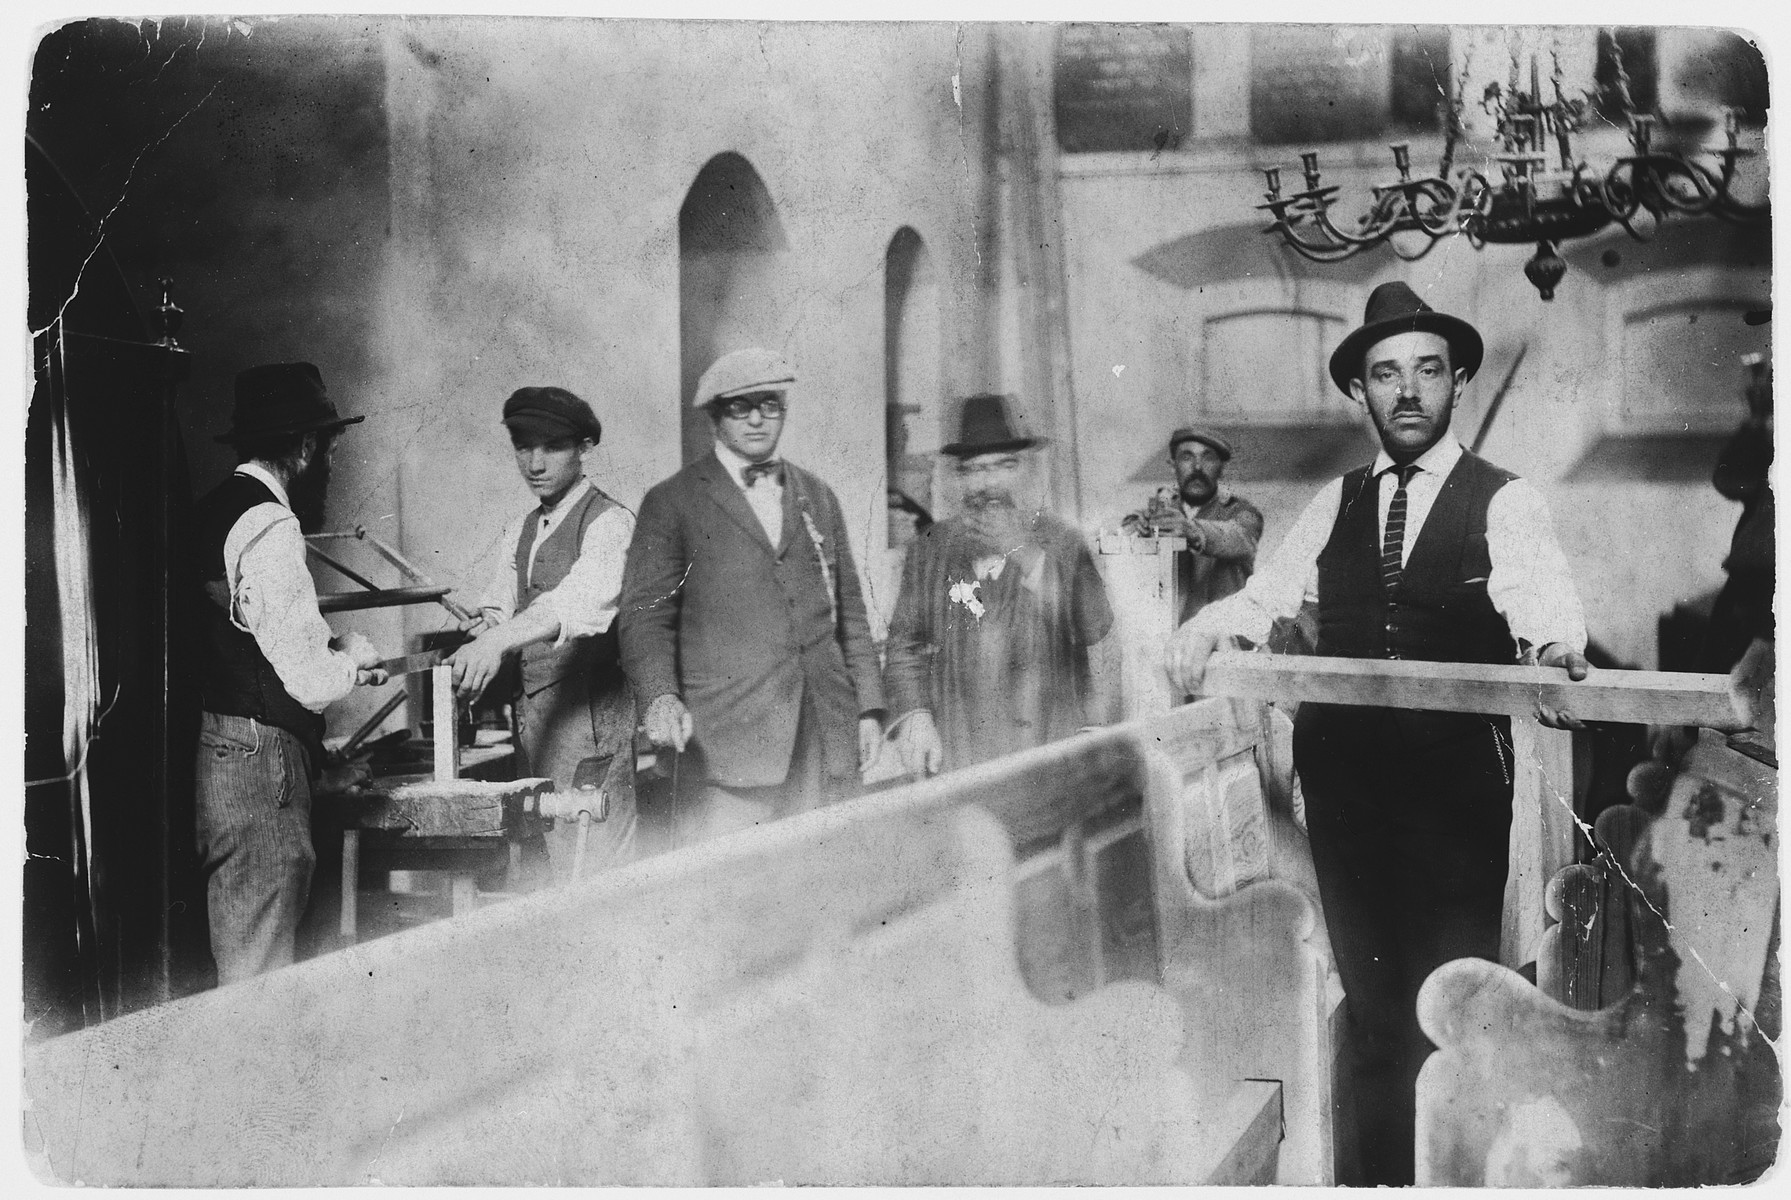 Harry Handel, a Jewish-American visitor (formerly from Drohobycz) surveys carpenters working inside a synagogue.